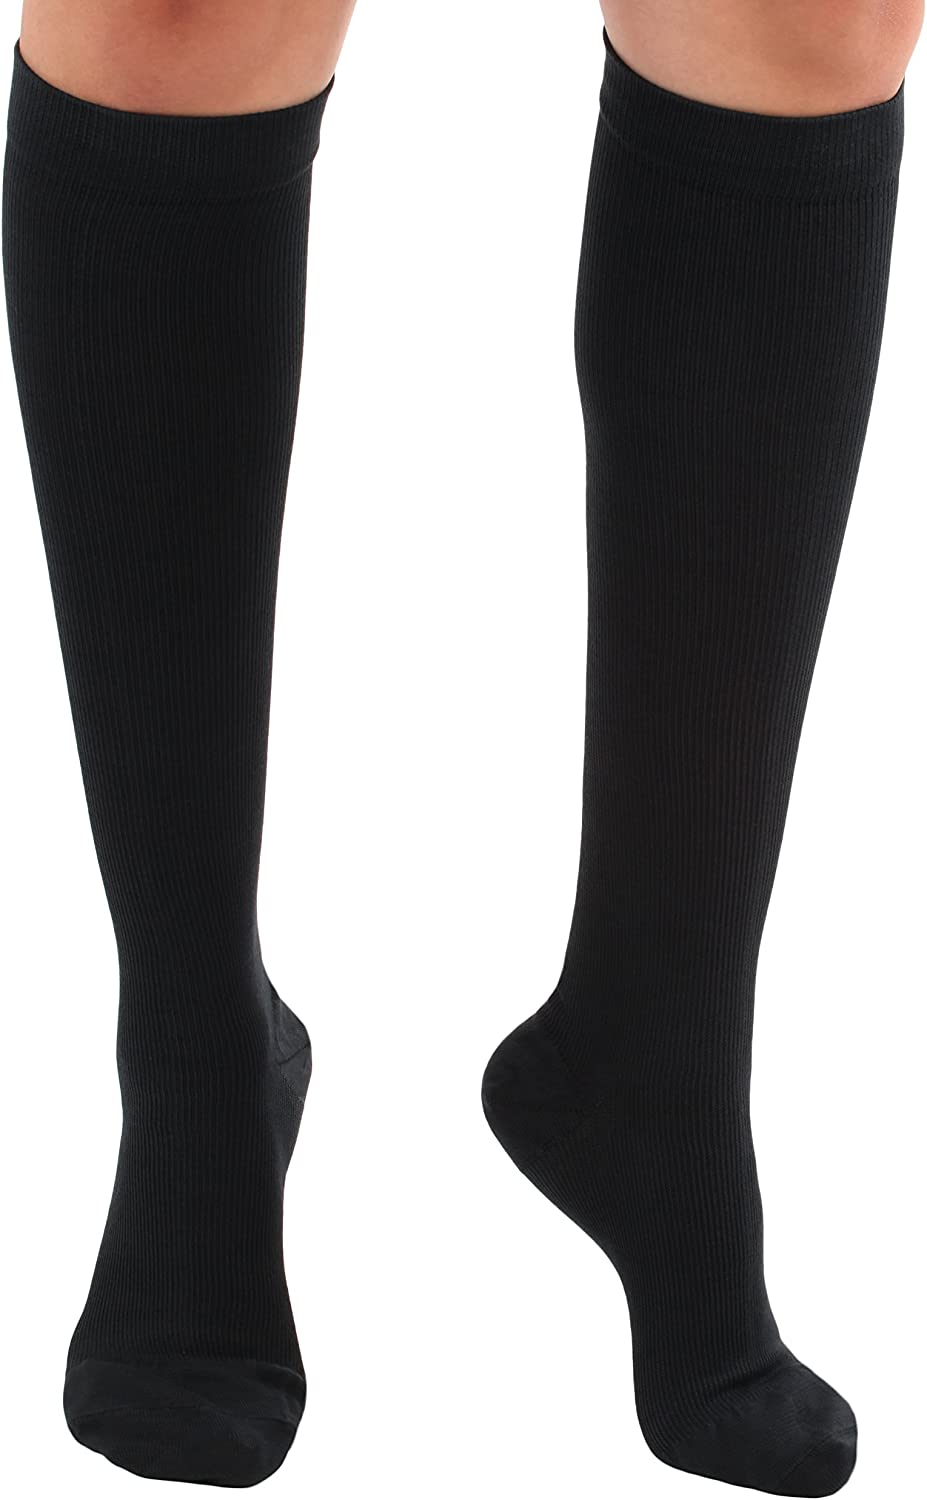 Mojo Compression Socks Unisex Knee-Hi Our shop OFFers the Complete Free Shipping best service Travel Stockings 15-20mmHg